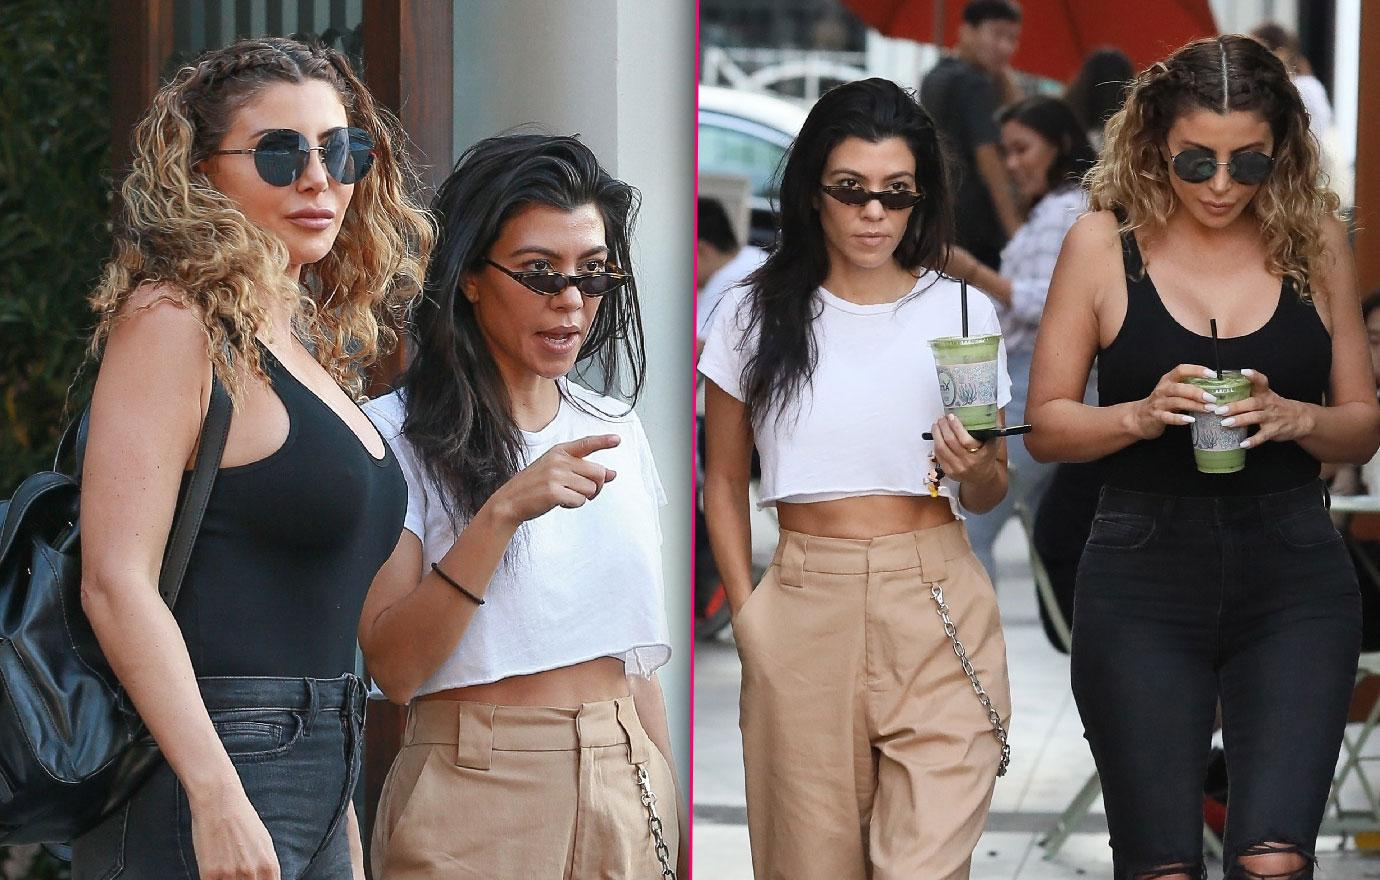 Kourtney Kardashian And Larsa Pippen Have Fun Date